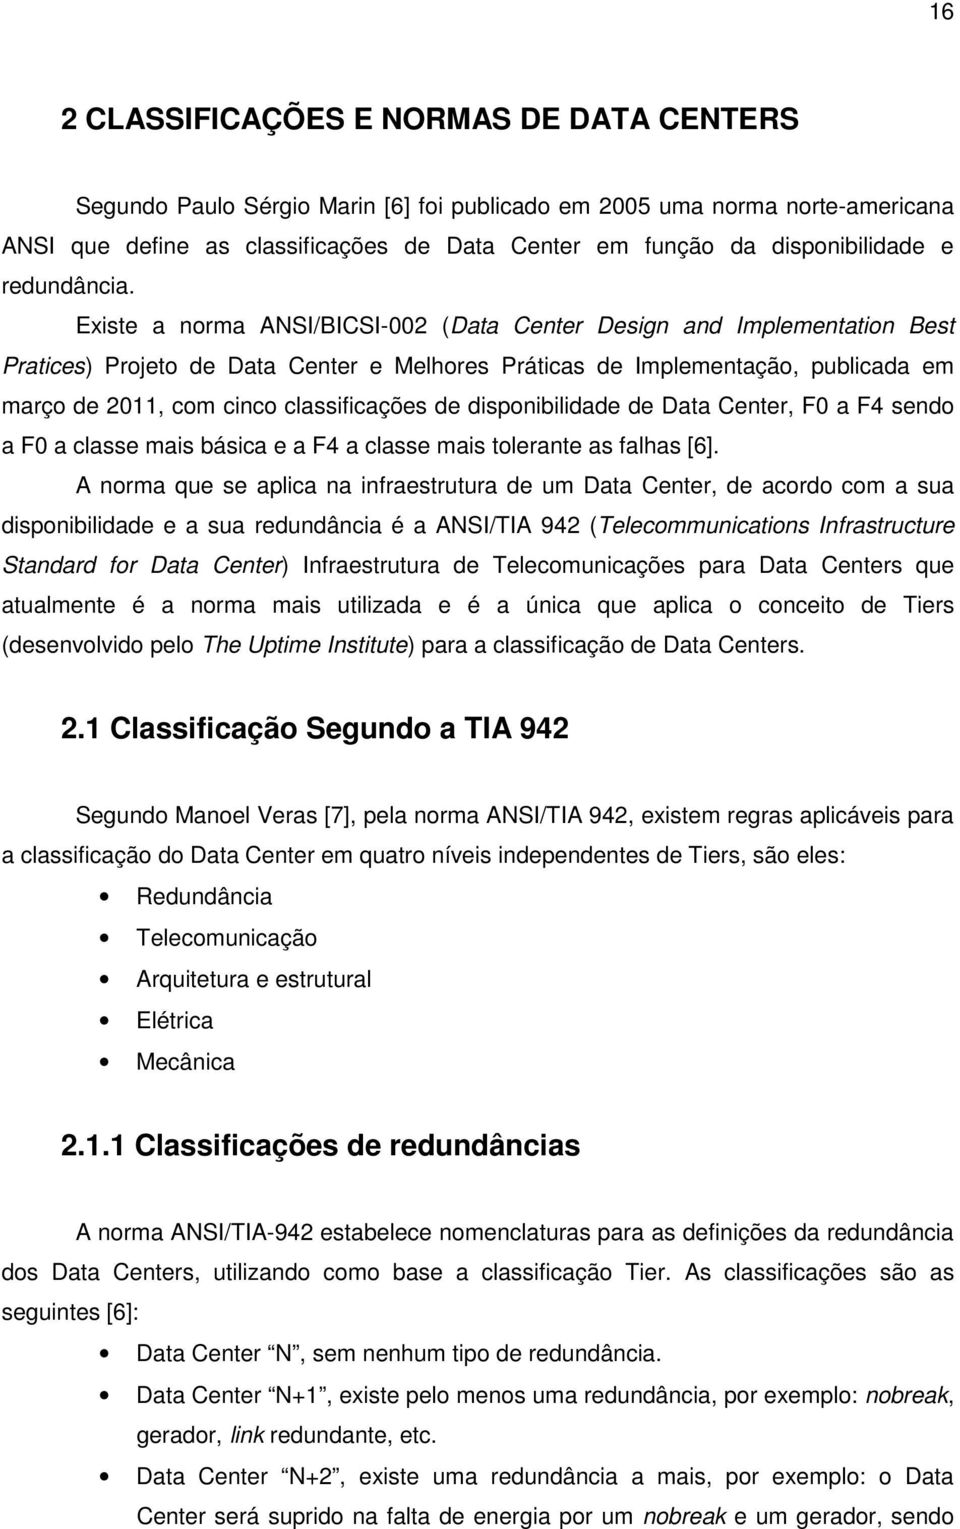 Existe a norma ANSI/BICSI-002 (Data Center Design and Implementation Best Pratices) Projeto de Data Center e Melhores Práticas de Implementação, publicada em março de 2011, com cinco classificações